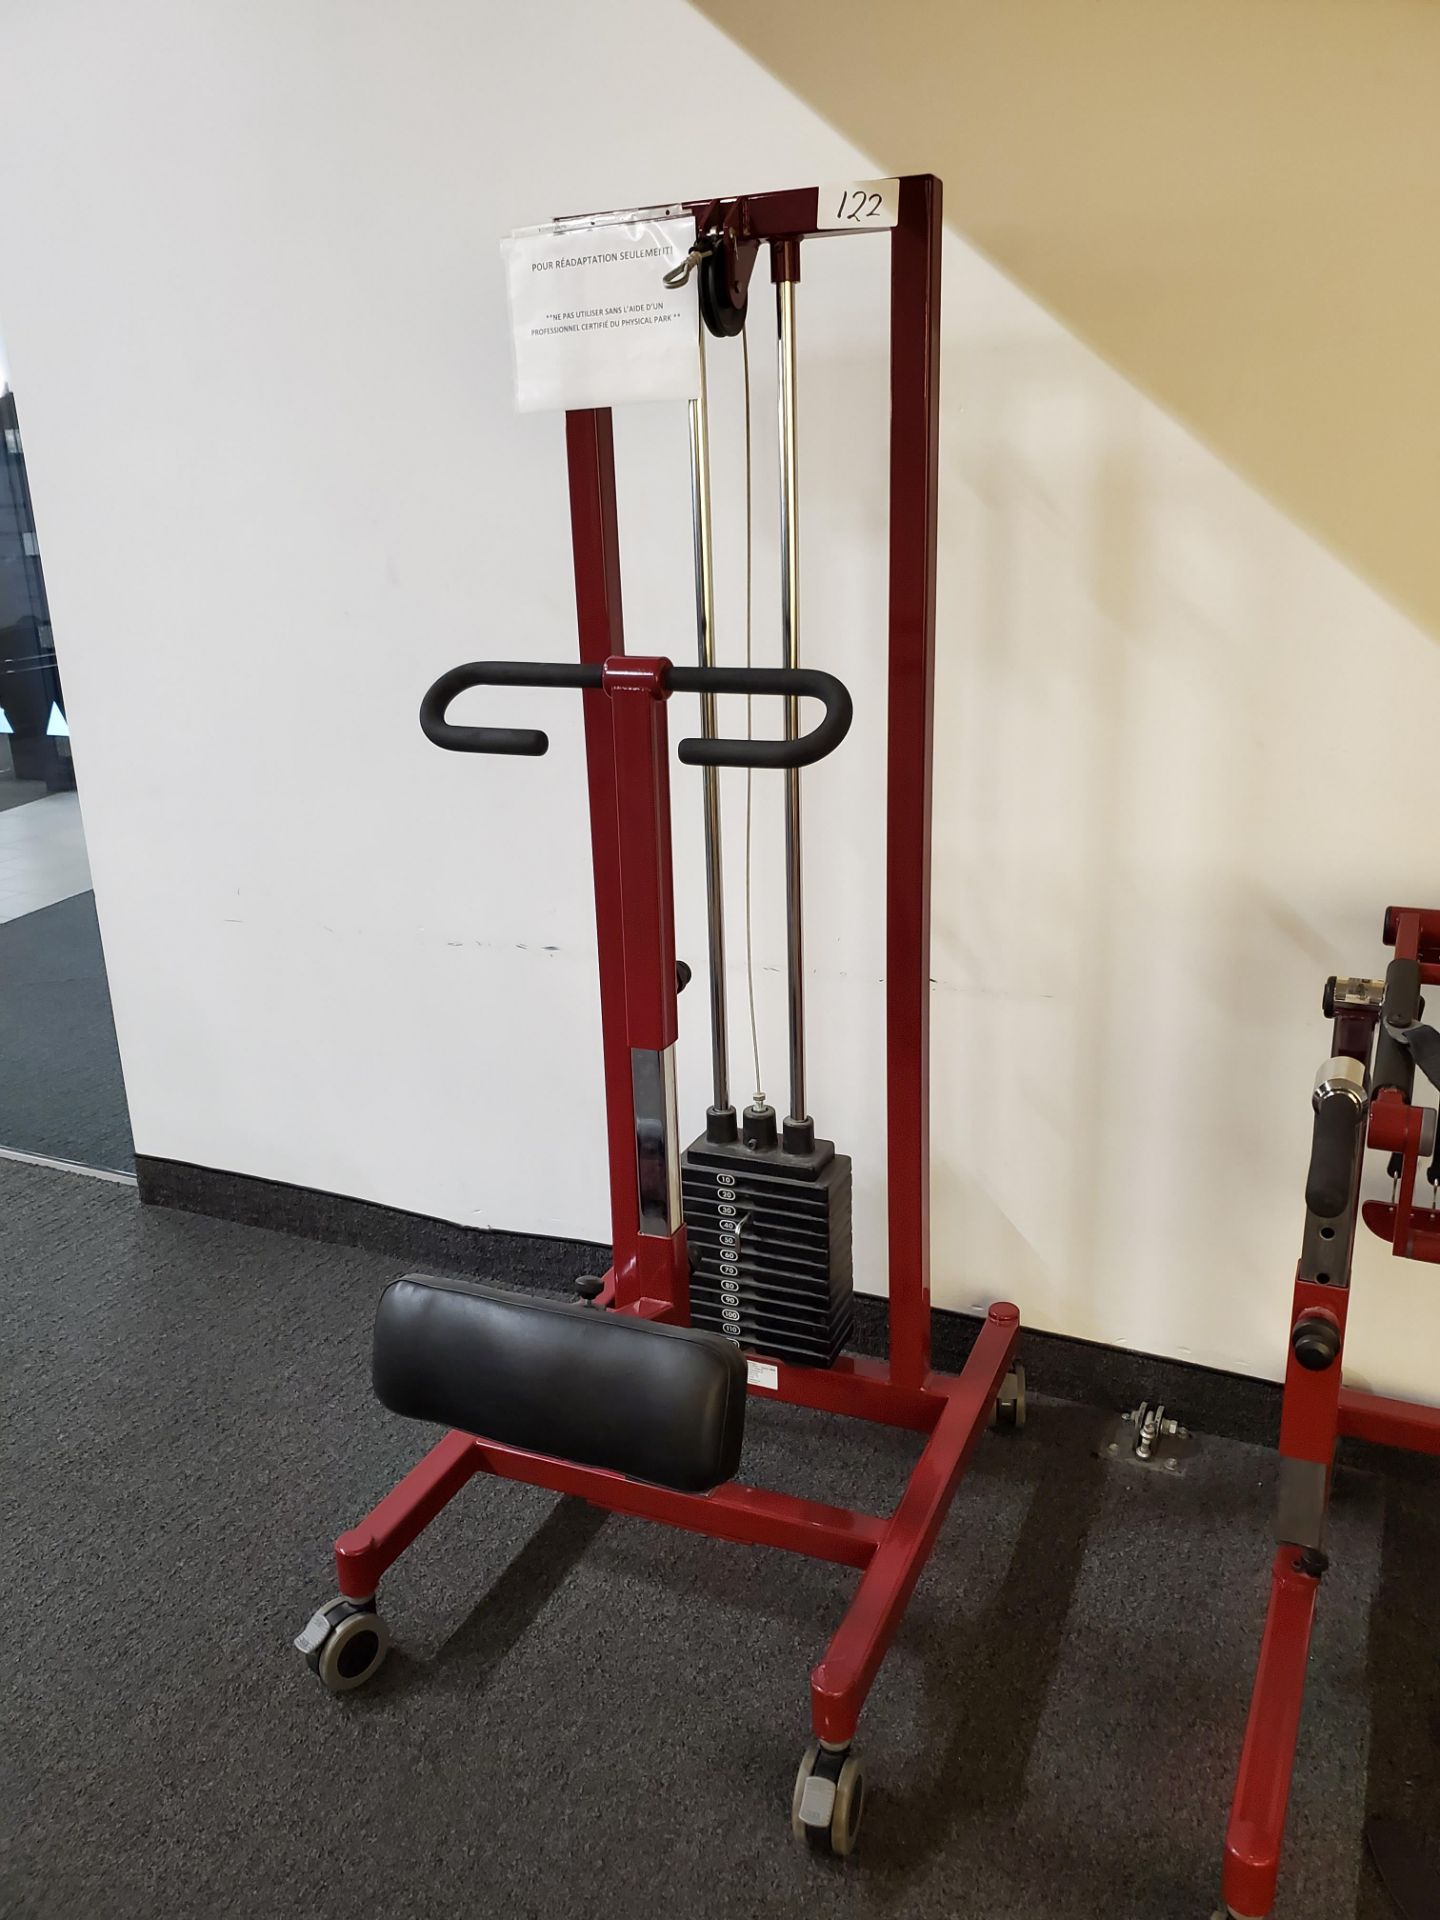 Lot 122 - NeuroGym E-STS-A Sit-To-Stand Trainer